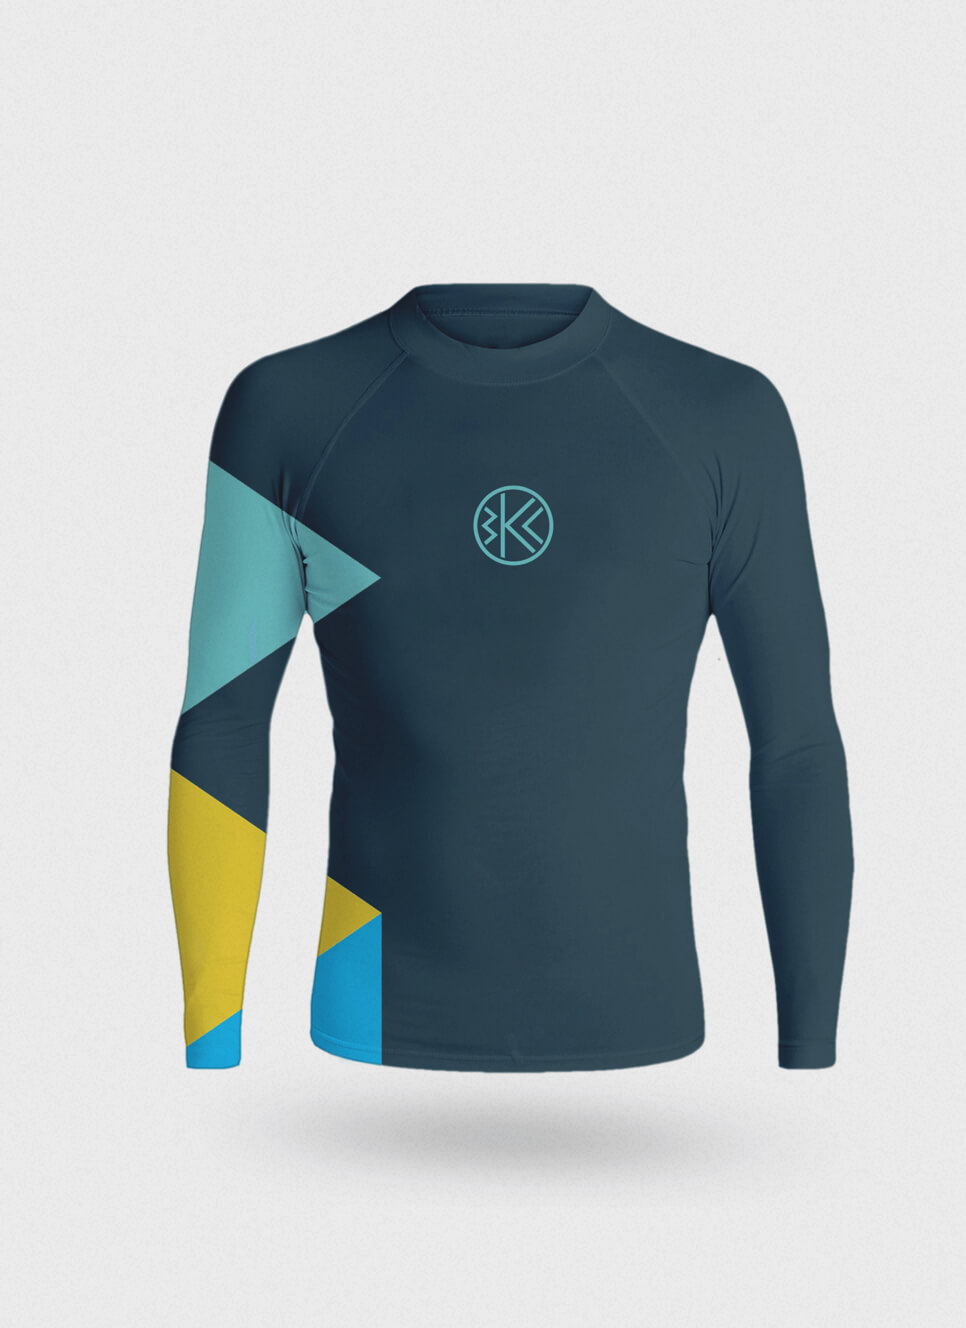 Belau Kanu Club rashguard with graphic device of triangles on the sleeves